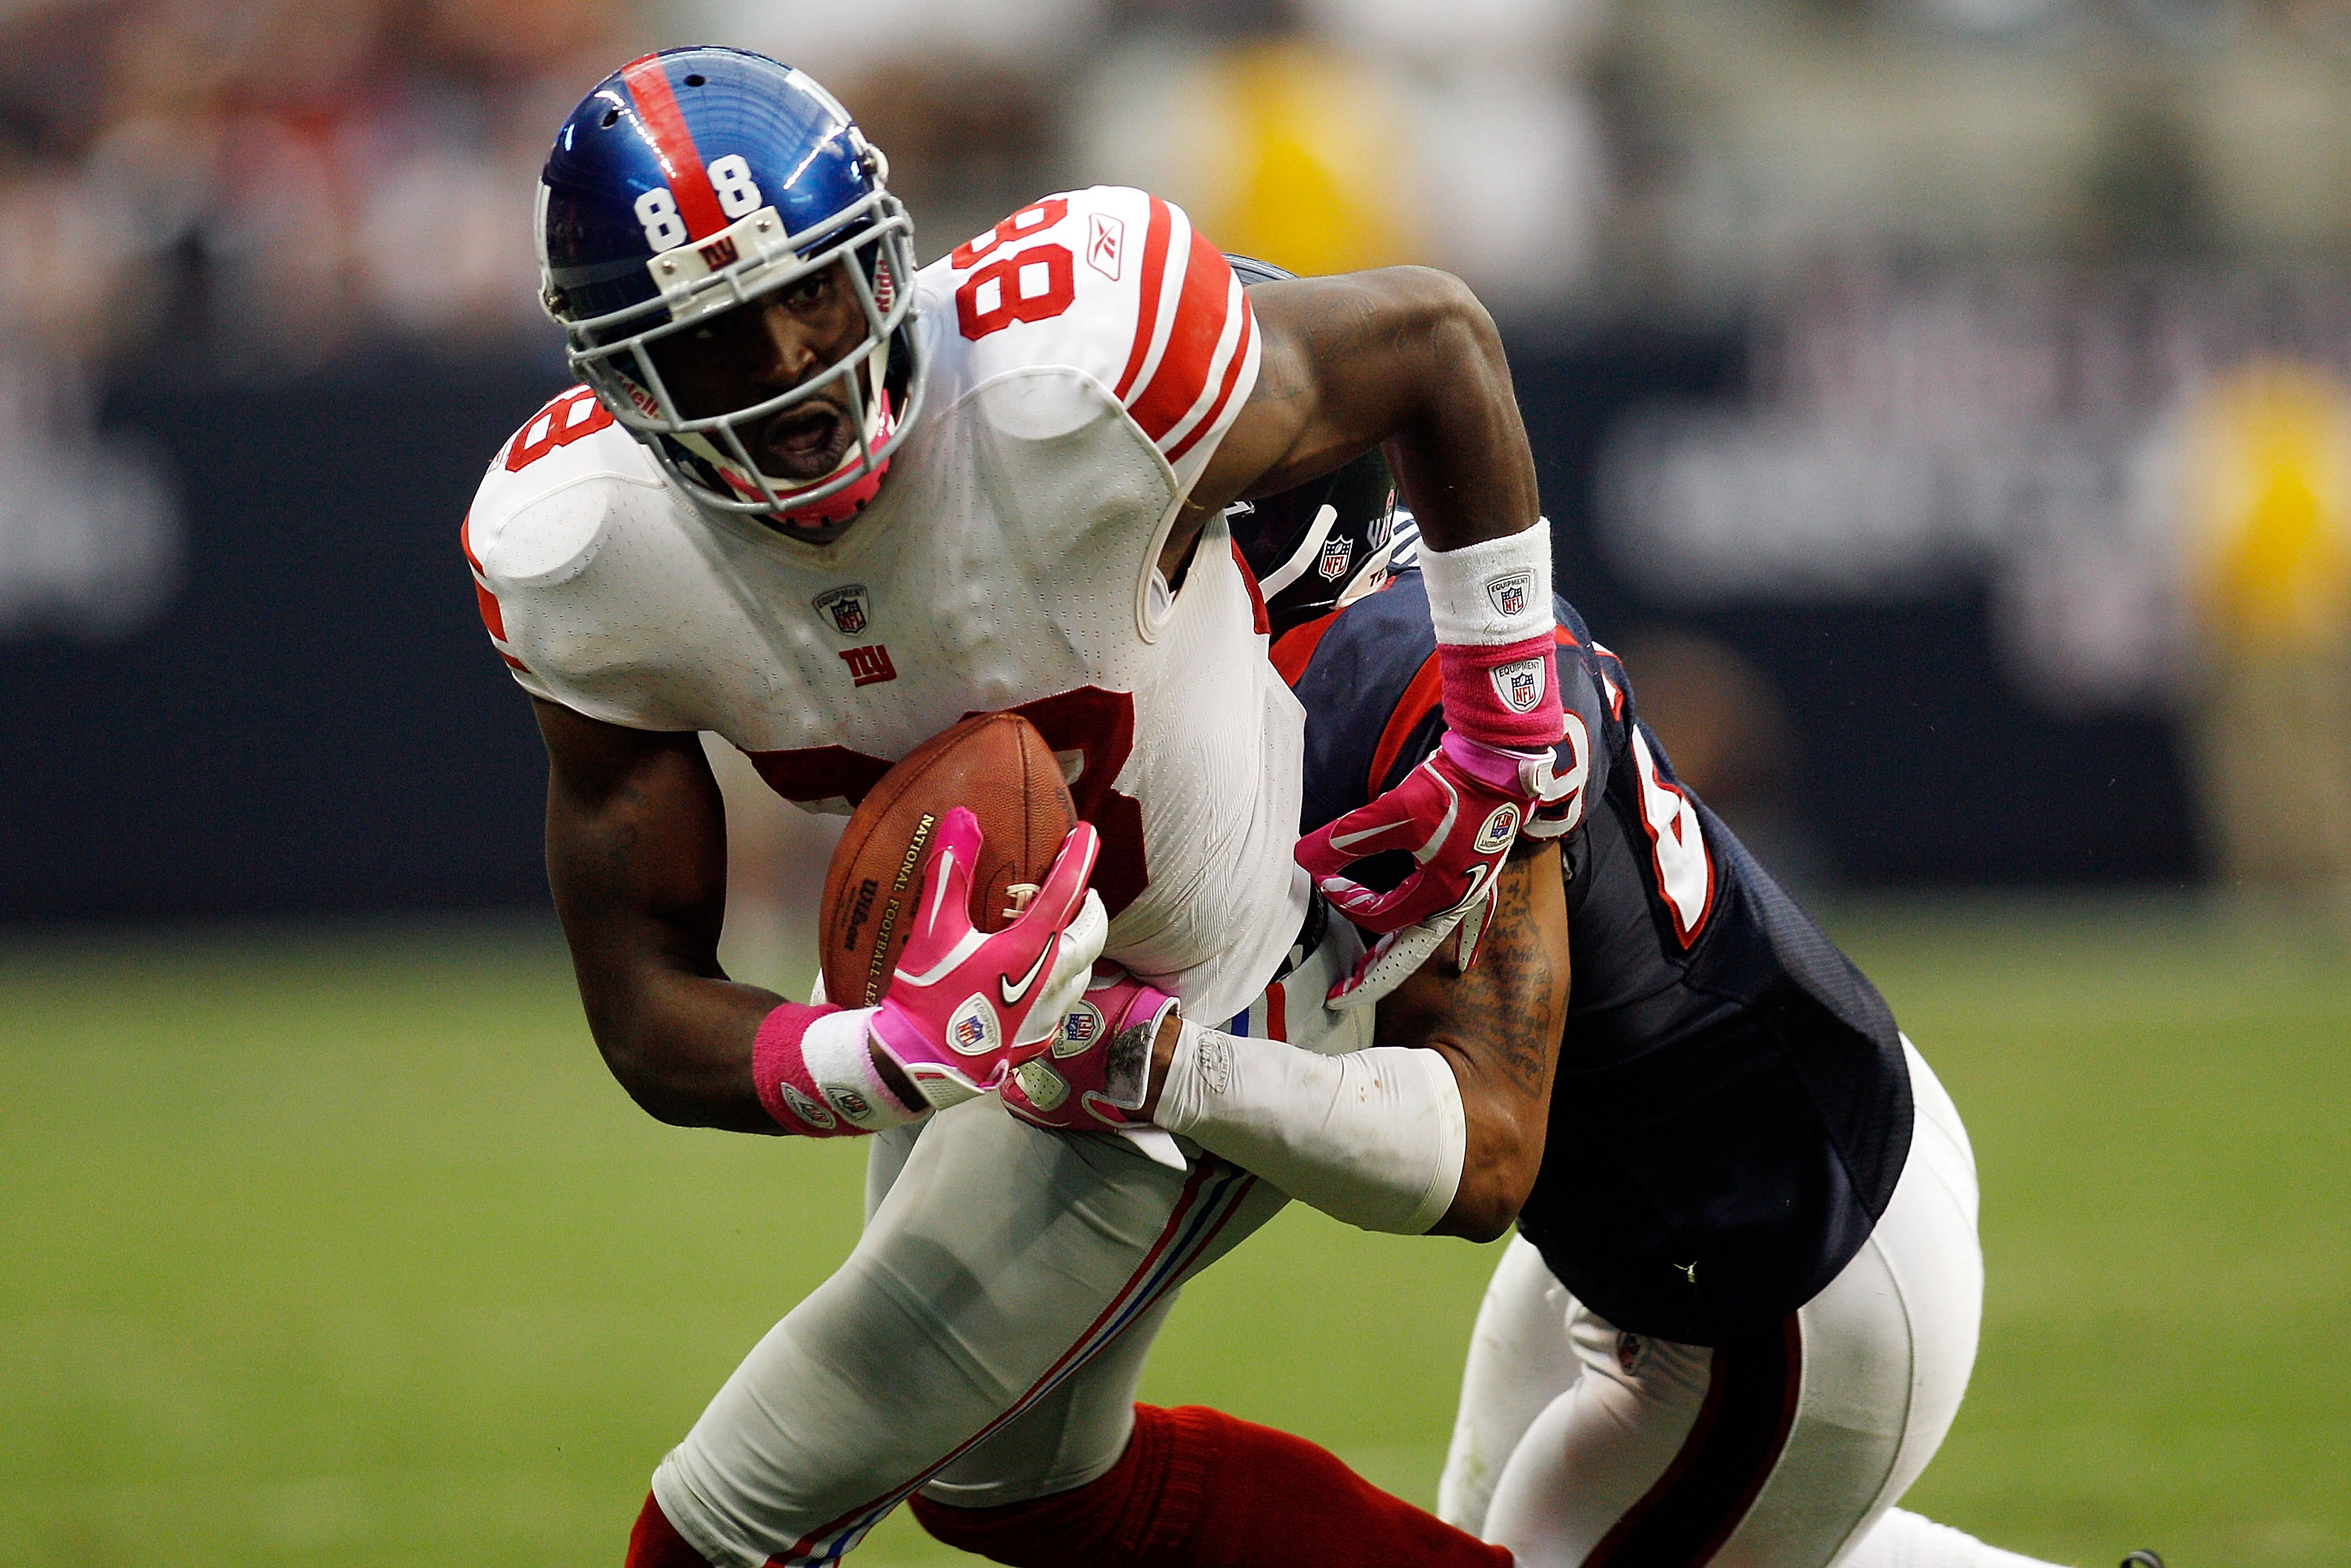 HOUSTON - OCTOBER 10:  Hakeem Nicks #88 of the New York Giants is tackled by Glover Quin #29 of the Houston Texans at Reliant Stadium on October 10, 2010 in Houston, Texas.  (Photo by Chris Graythen/Getty Images)